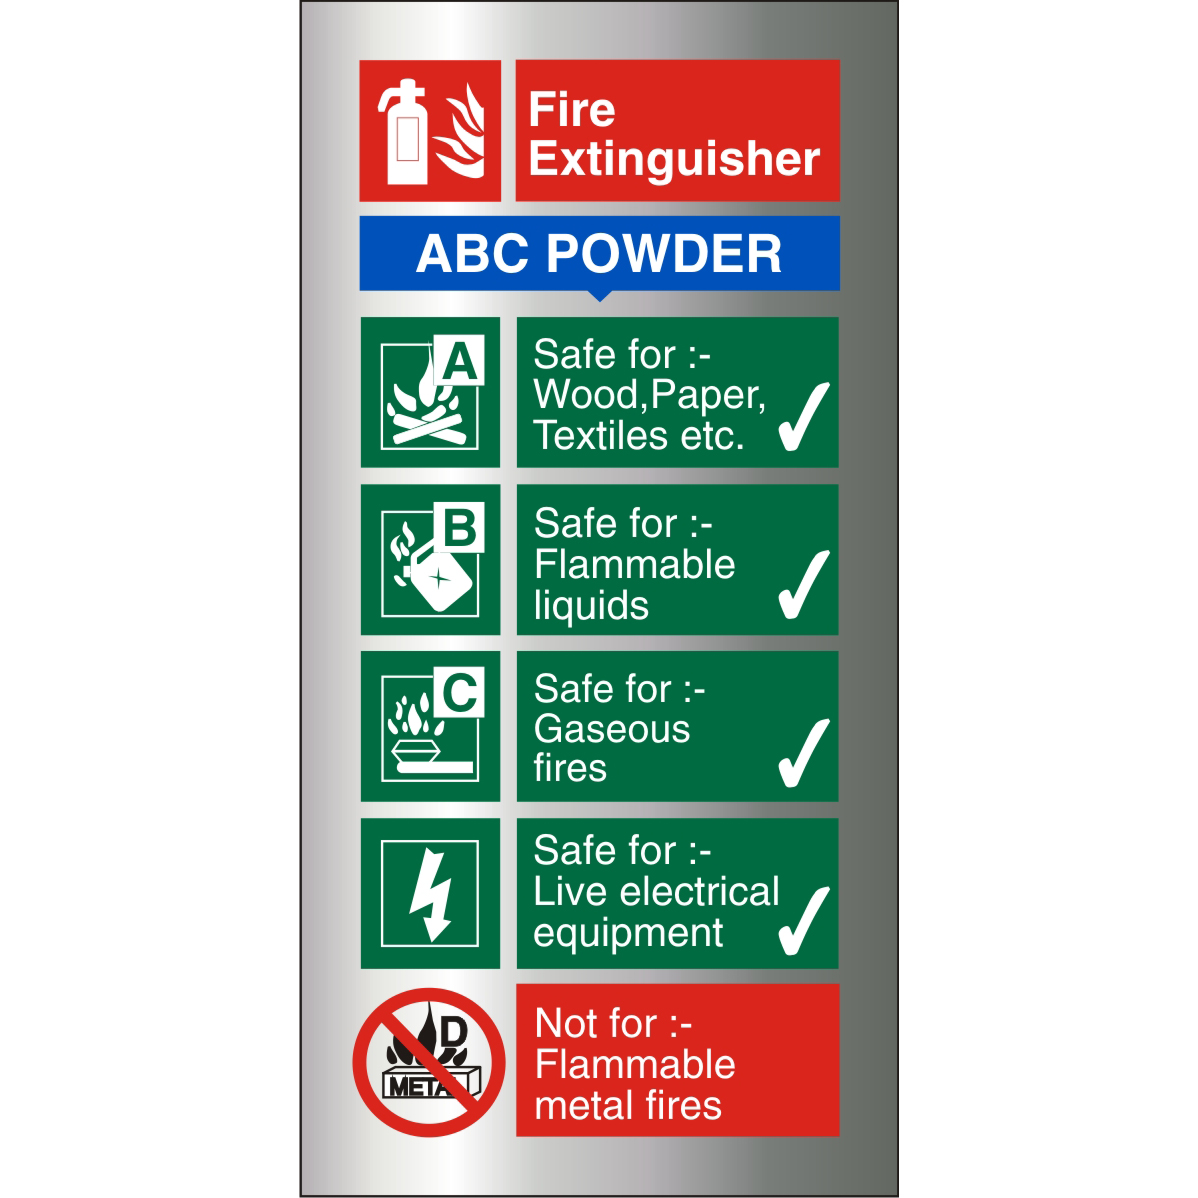 Brushed Alu Sign 100x200 1.5mm S/A FireExtinguisherABC Powder Ref BAFF092100x200 Up to 10 Day Leadtime